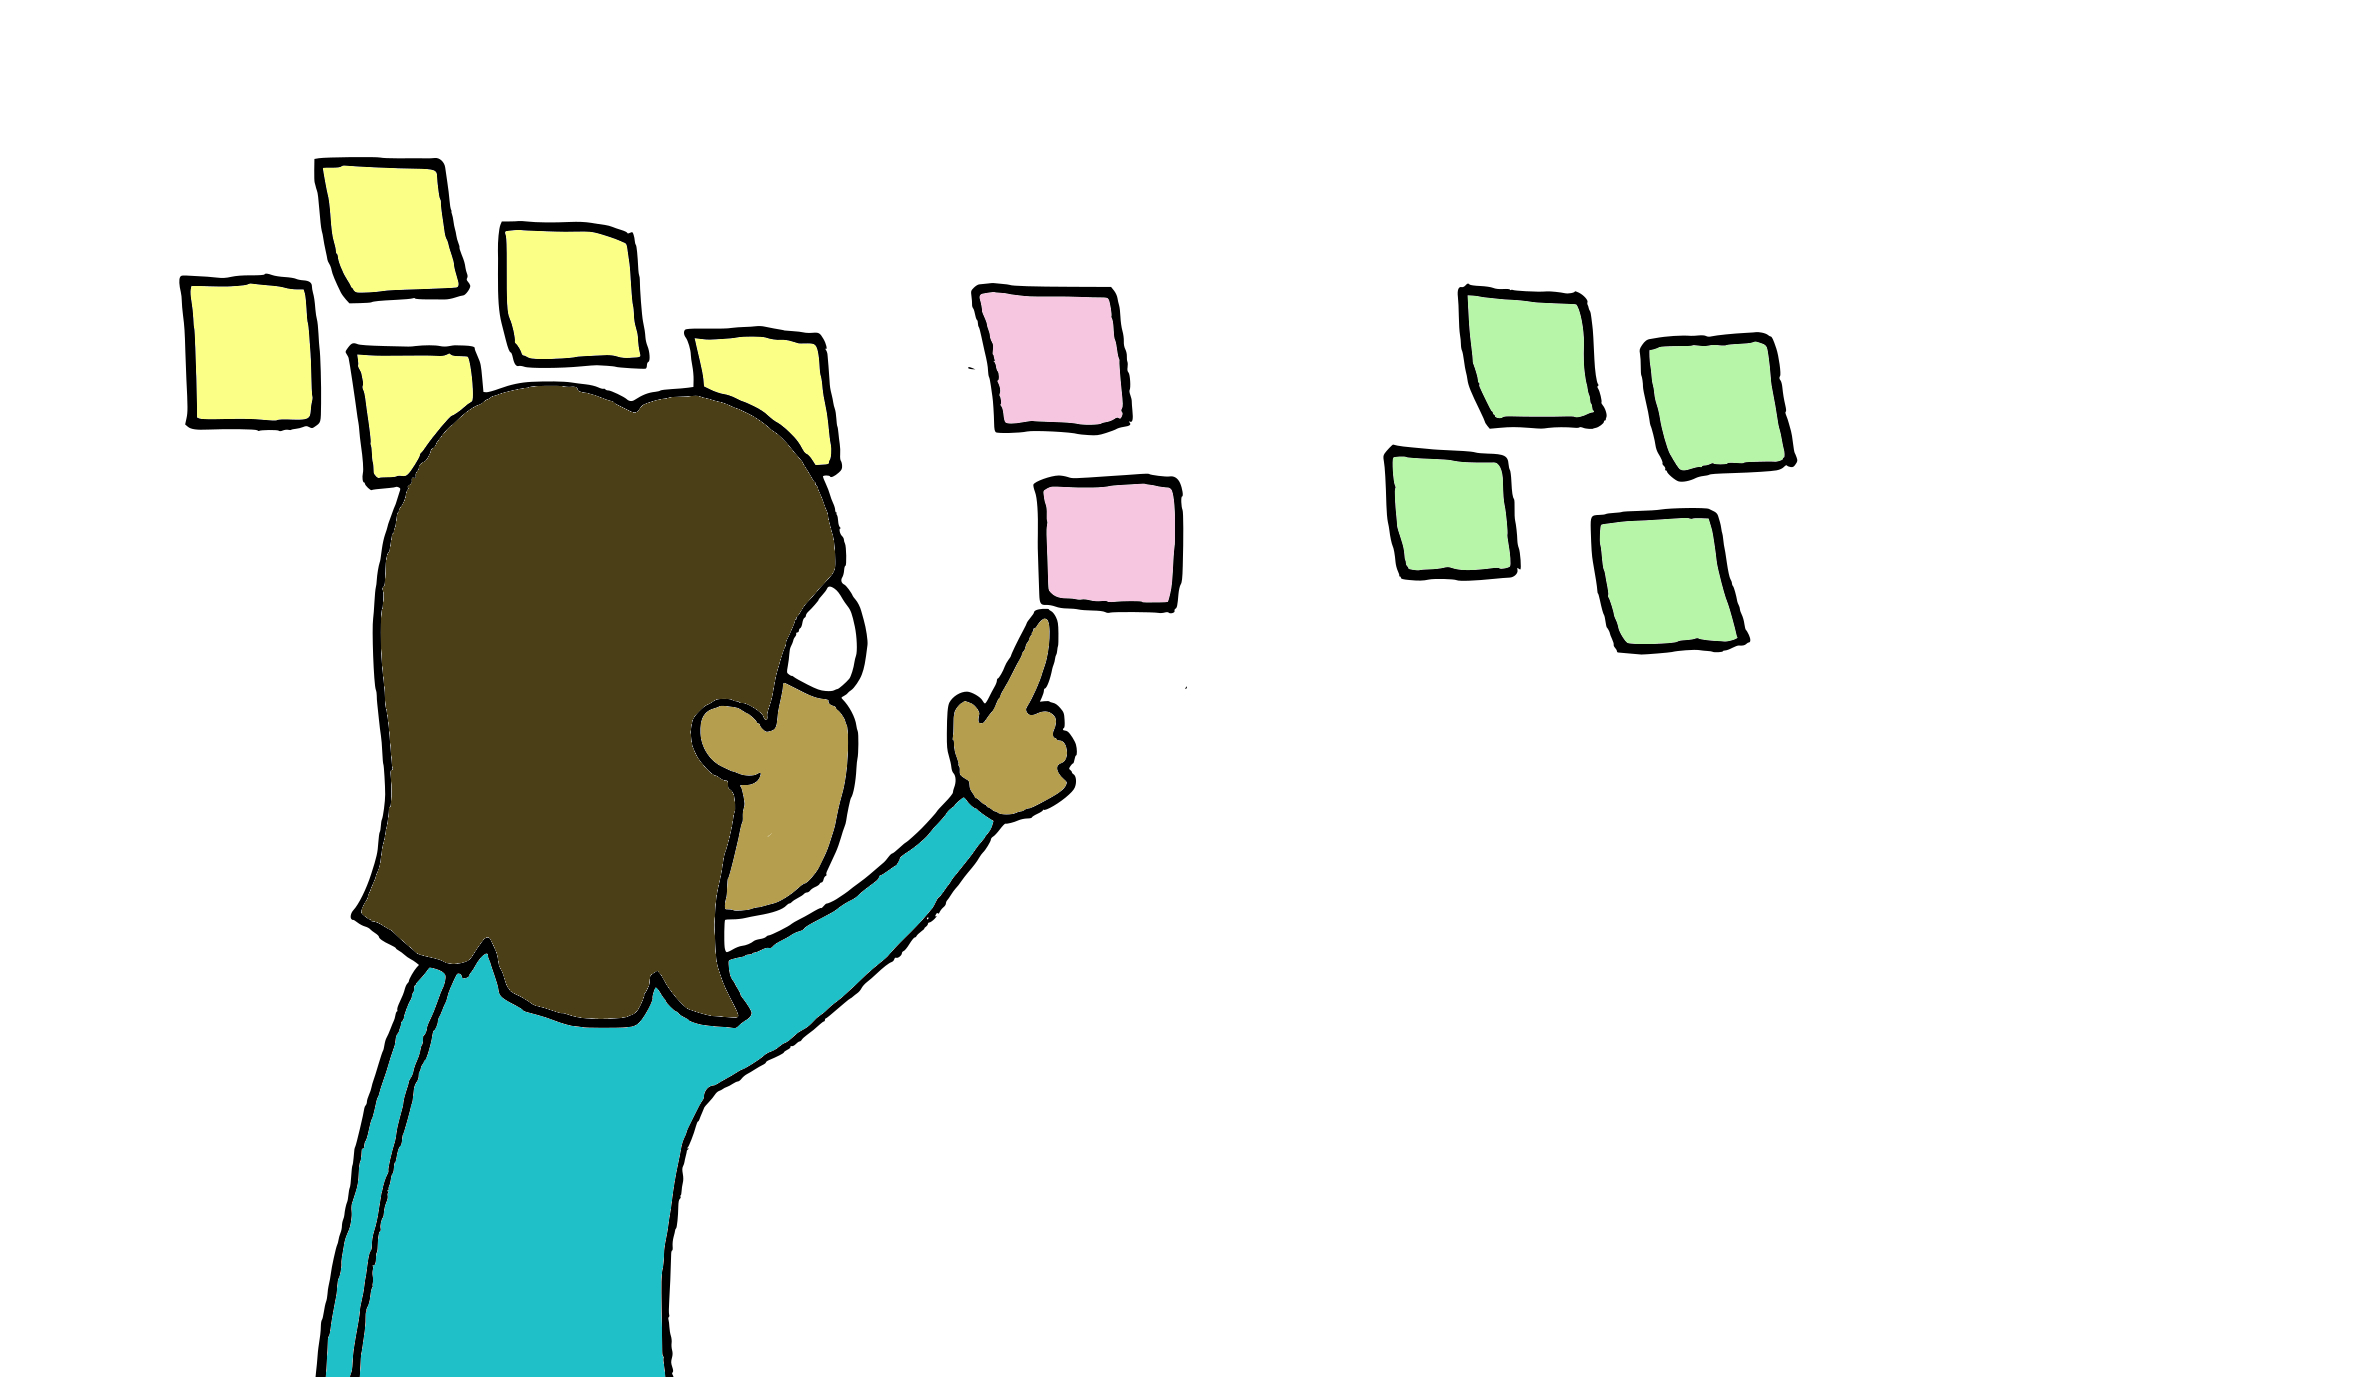 Person organizing sticky notes into related groups